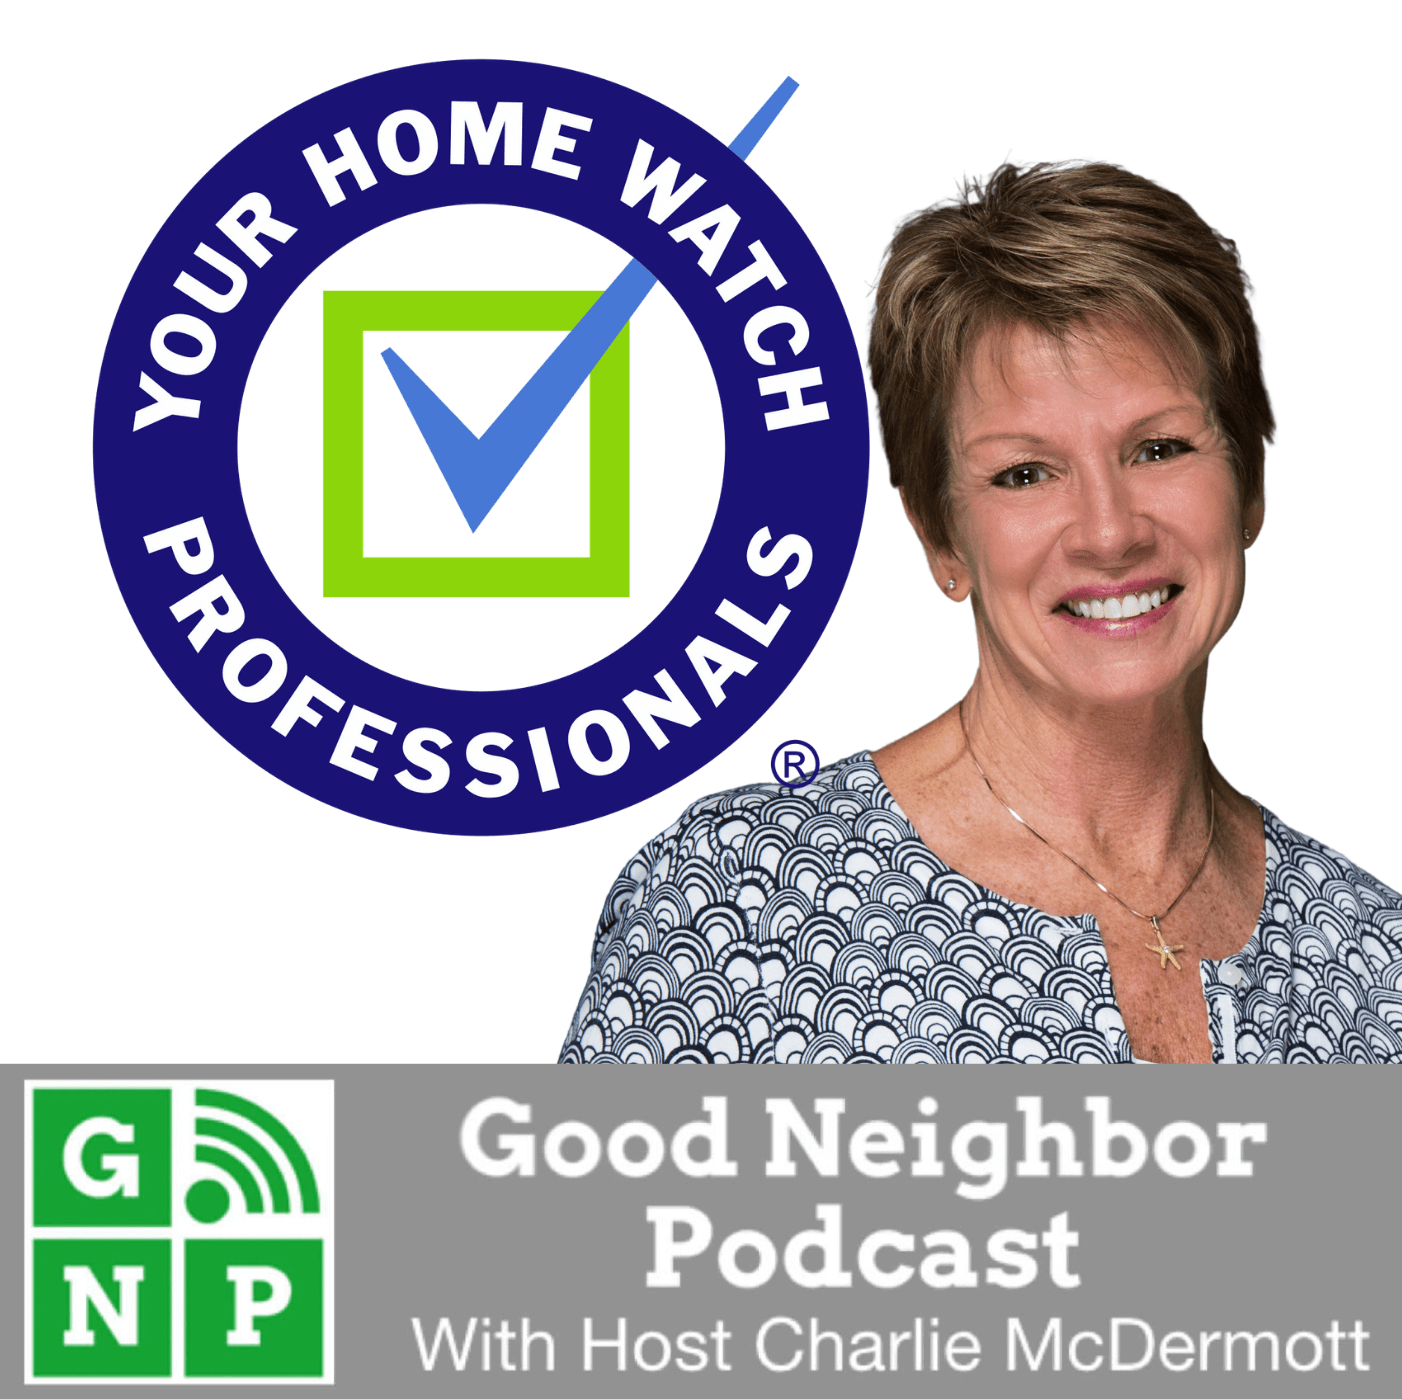 GNP - Your Home Watch - BADGE